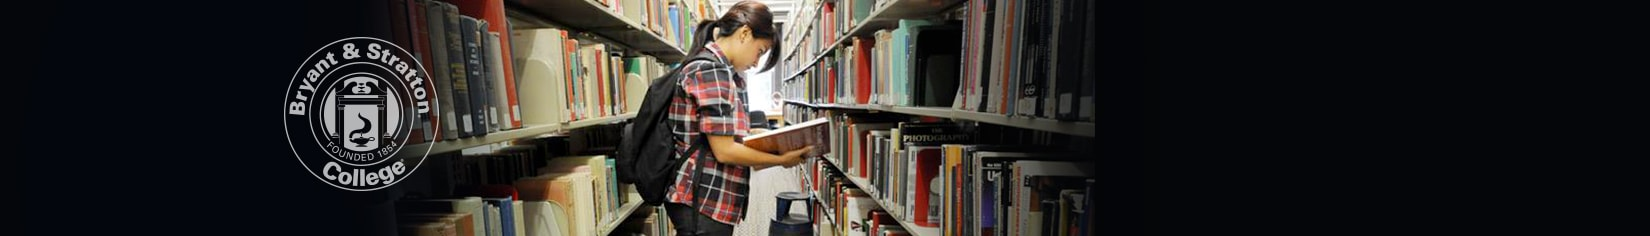 Student in library searching for books